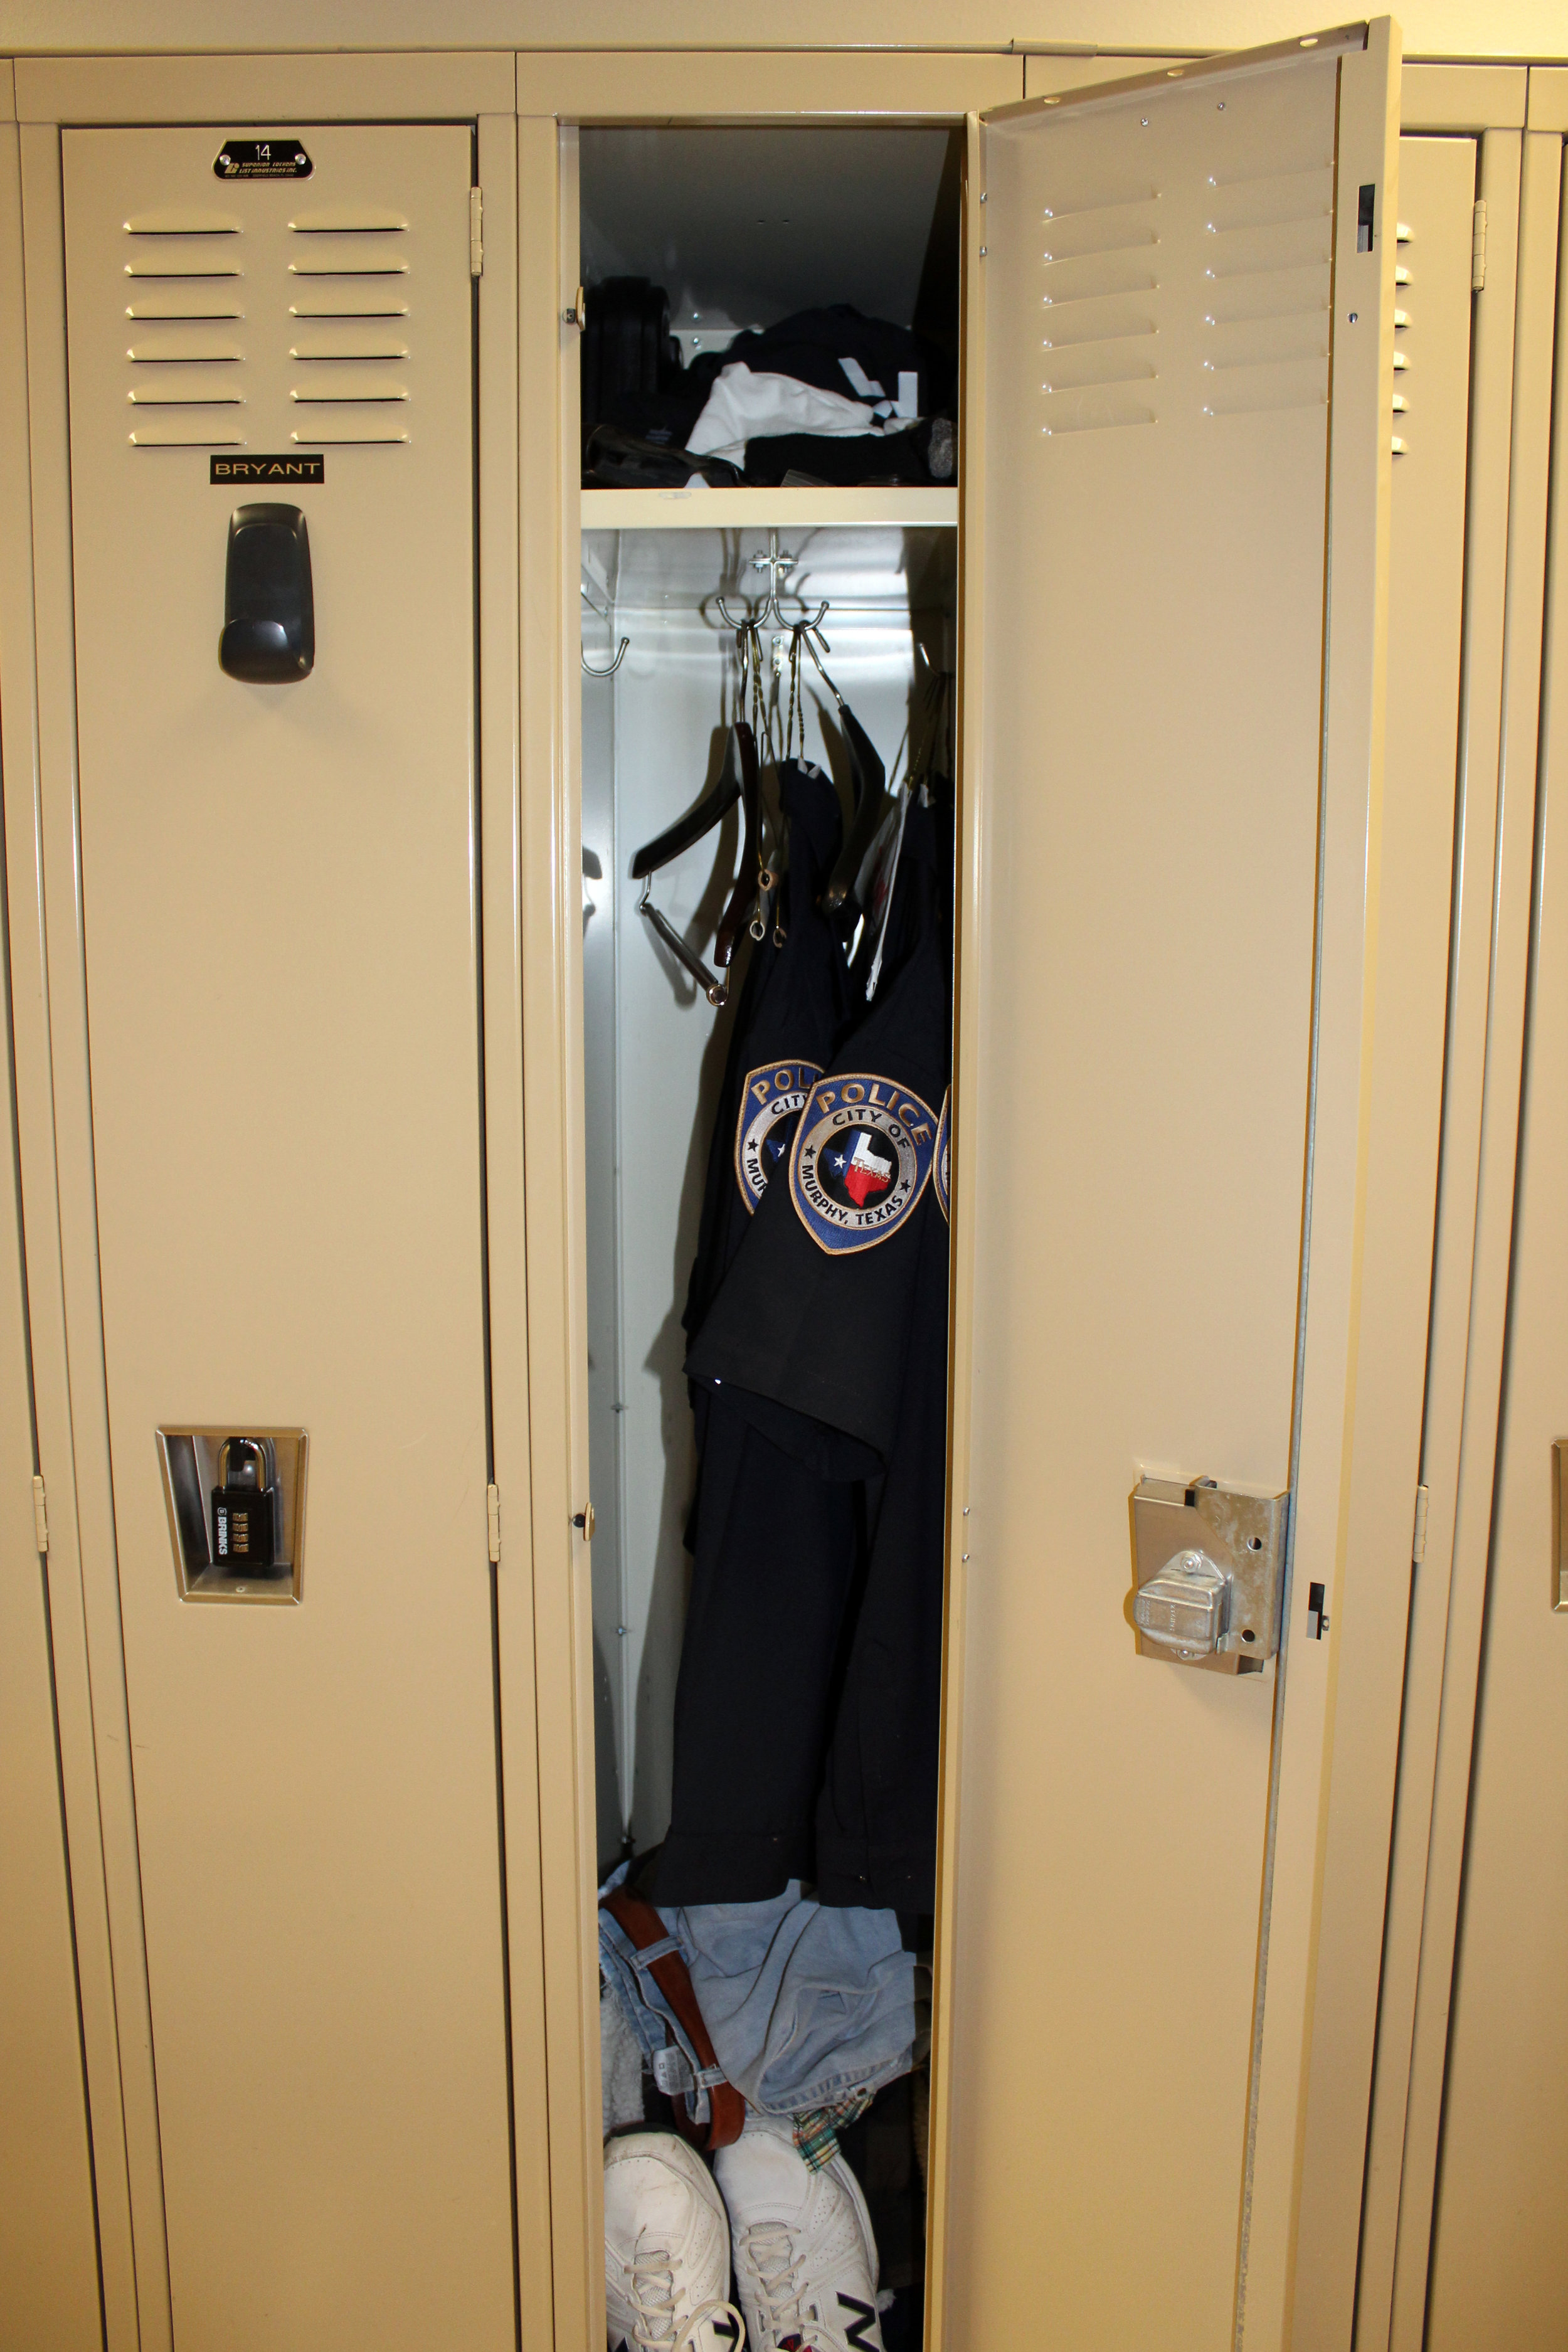 Existing lockers which will be replaced.